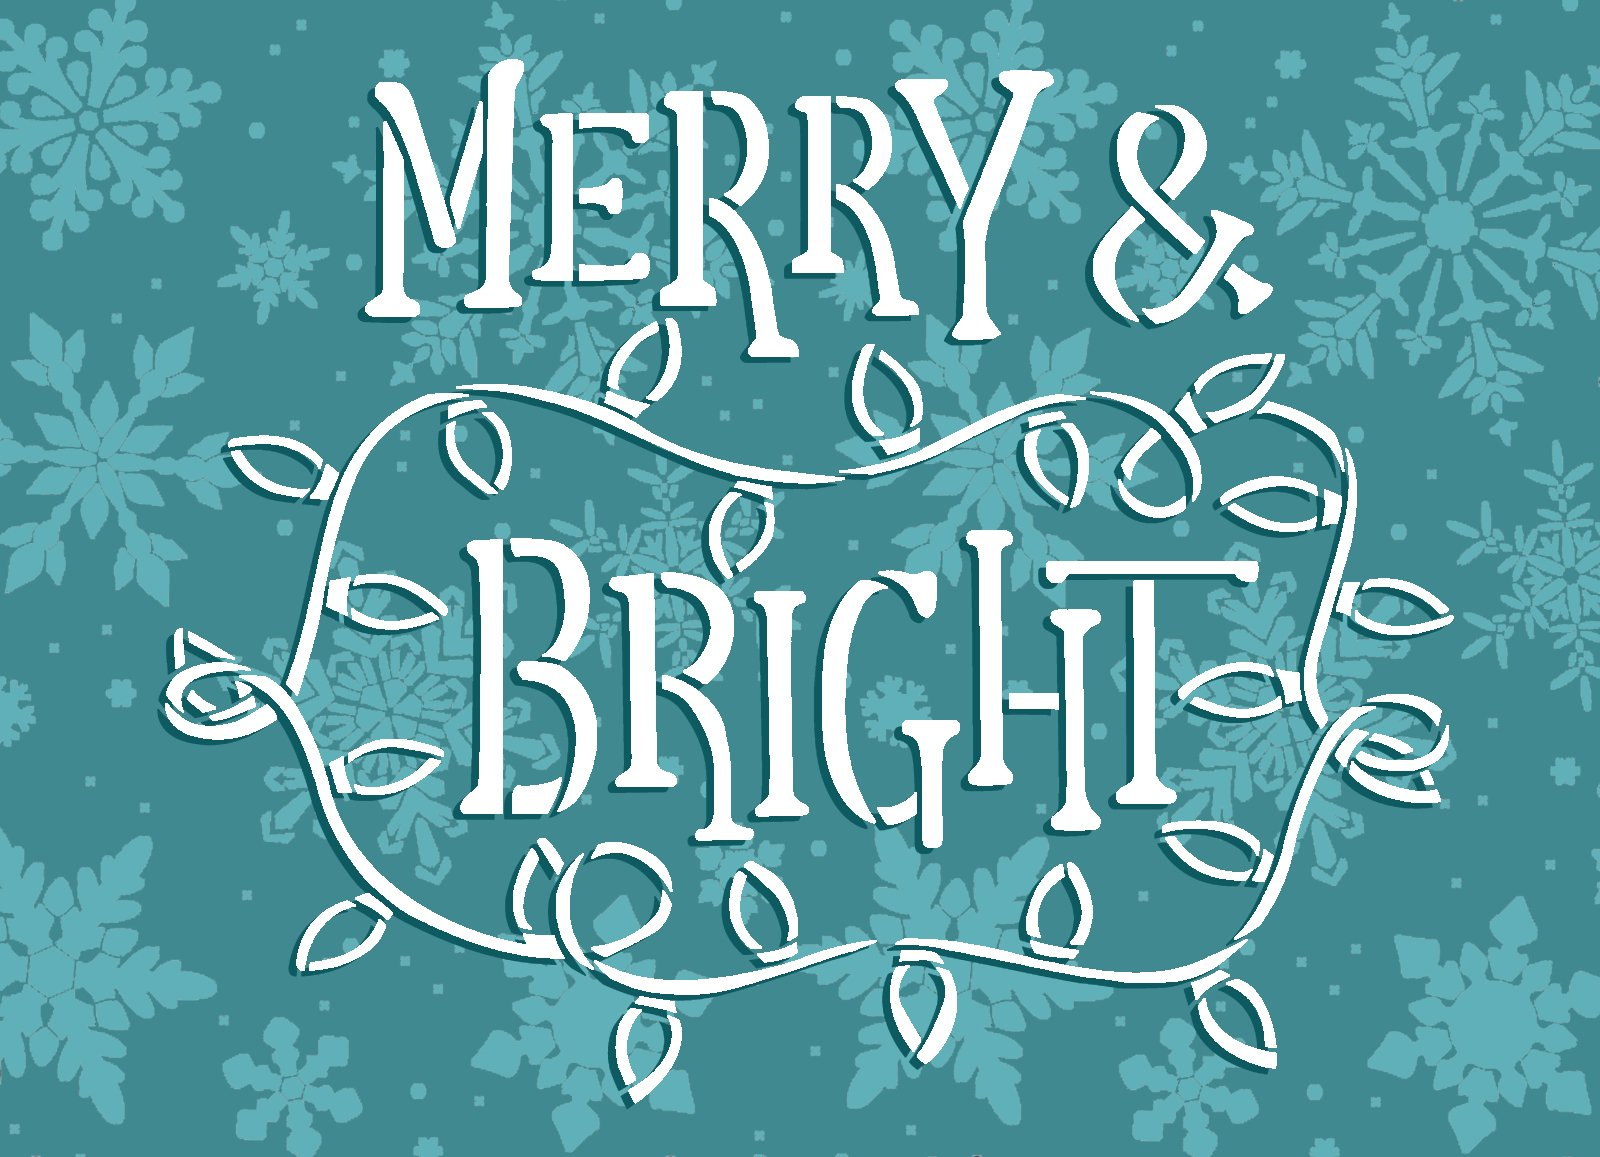 Merry & Bright Stencil by StudioR12   Craft DIY Christmas Light Home Decor   Paint Winter Holiday Wood Sign   Reusable Mylar Template   Select Size